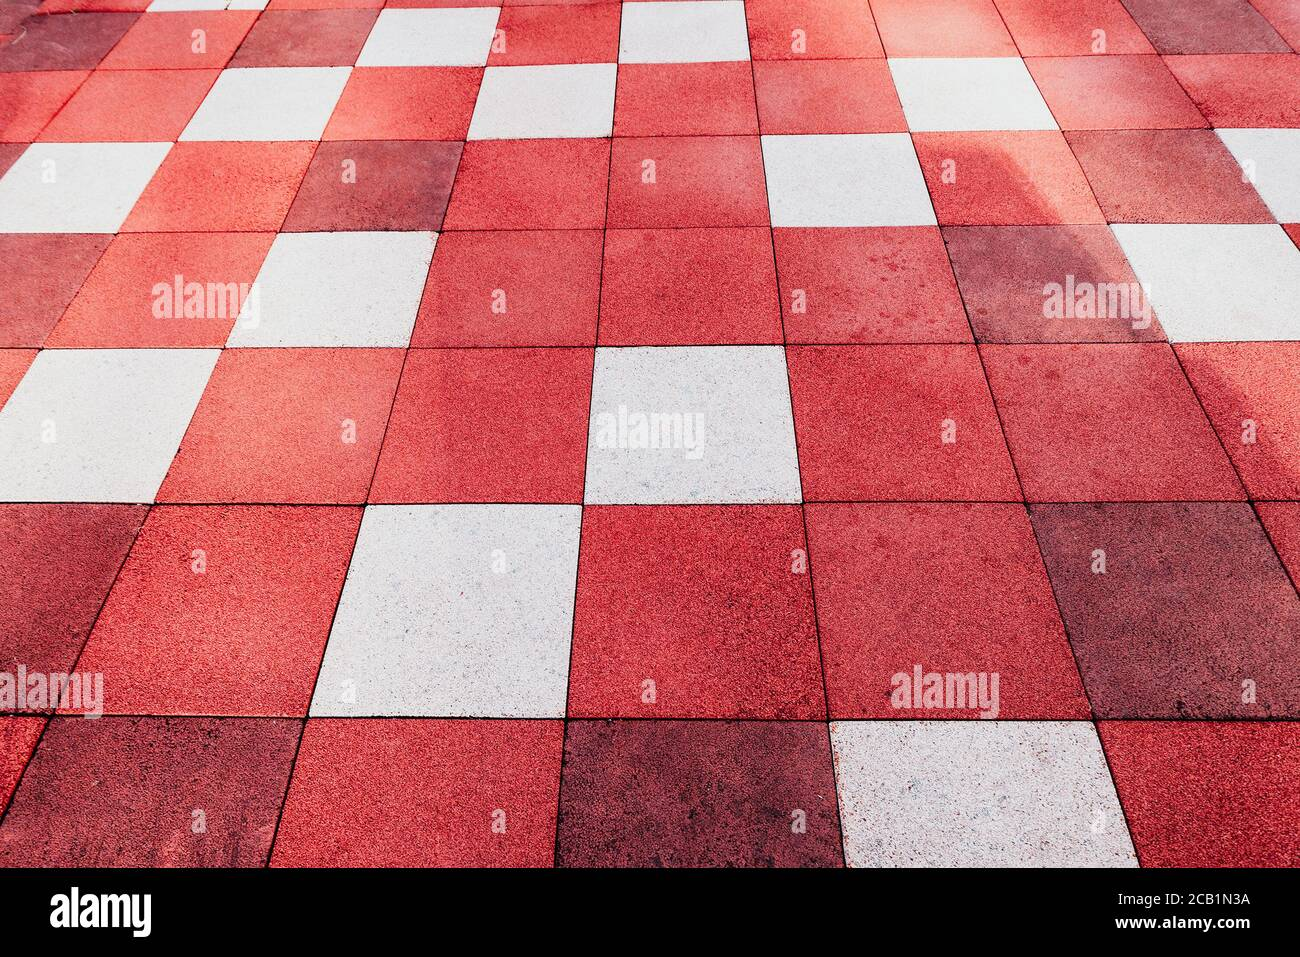 https www alamy com background of of red and white square shaped pavement tiles image368217454 html